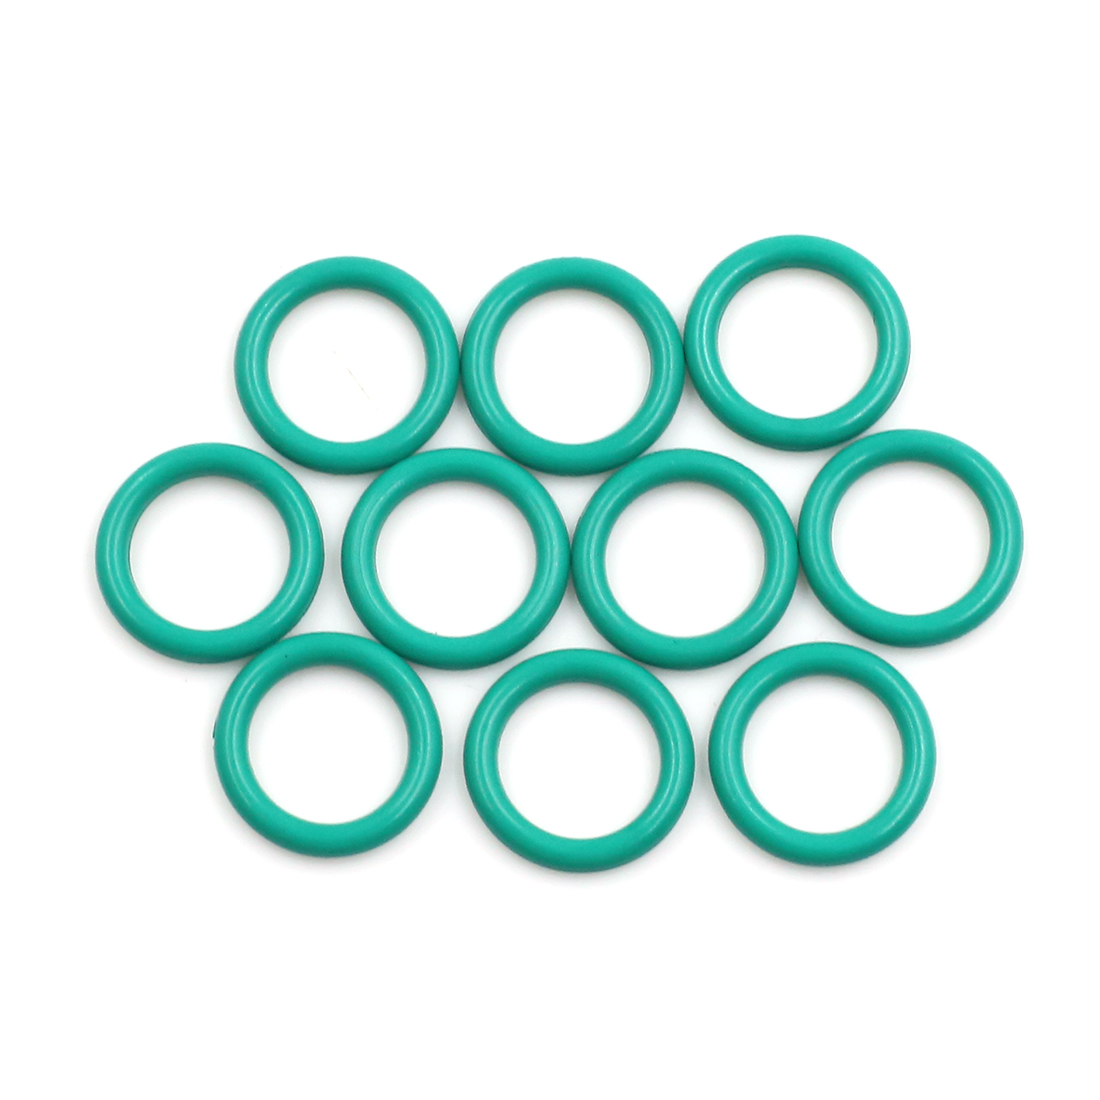 10pcs Green Fluorine Rubber O-Ring Seal Gasket Washer for Car 16 x 2.5mm